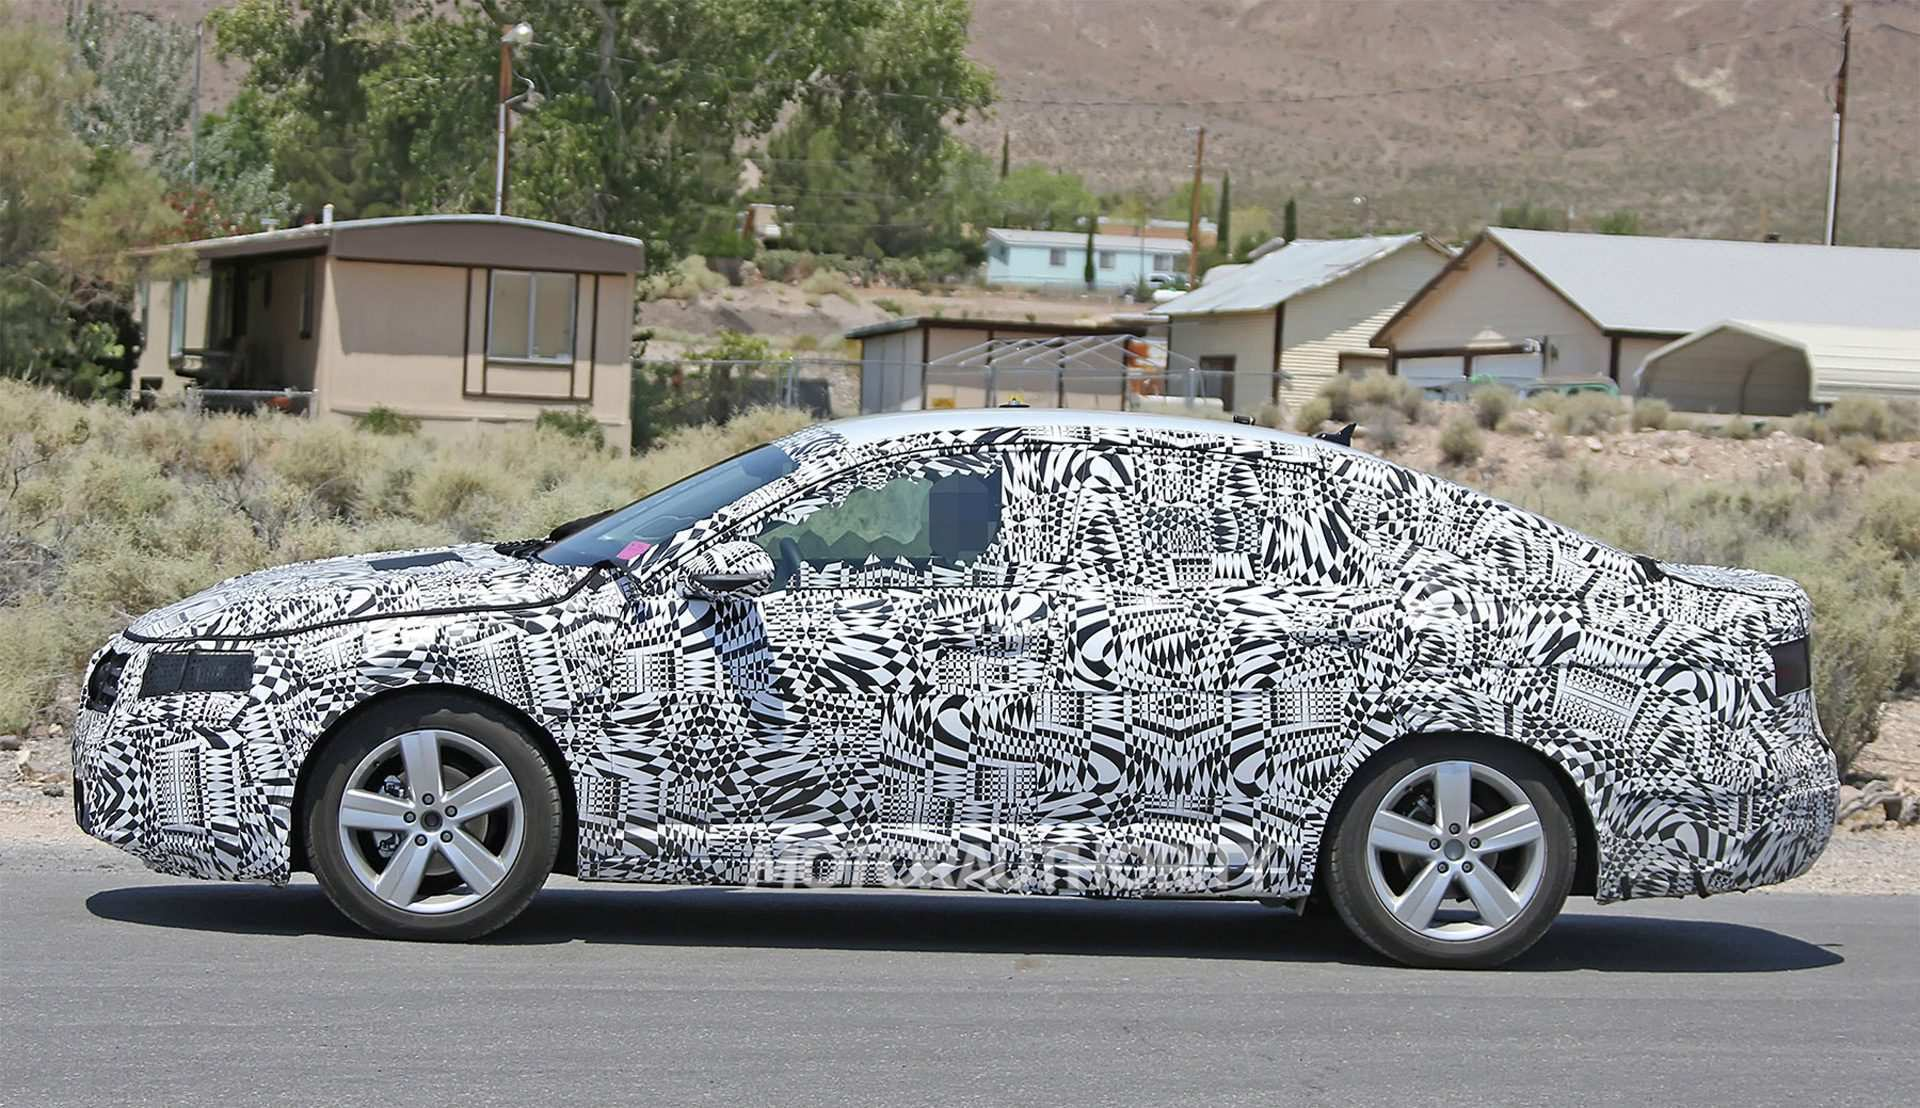 35 A 2019 Vw Jetta Spy Shots Pictures